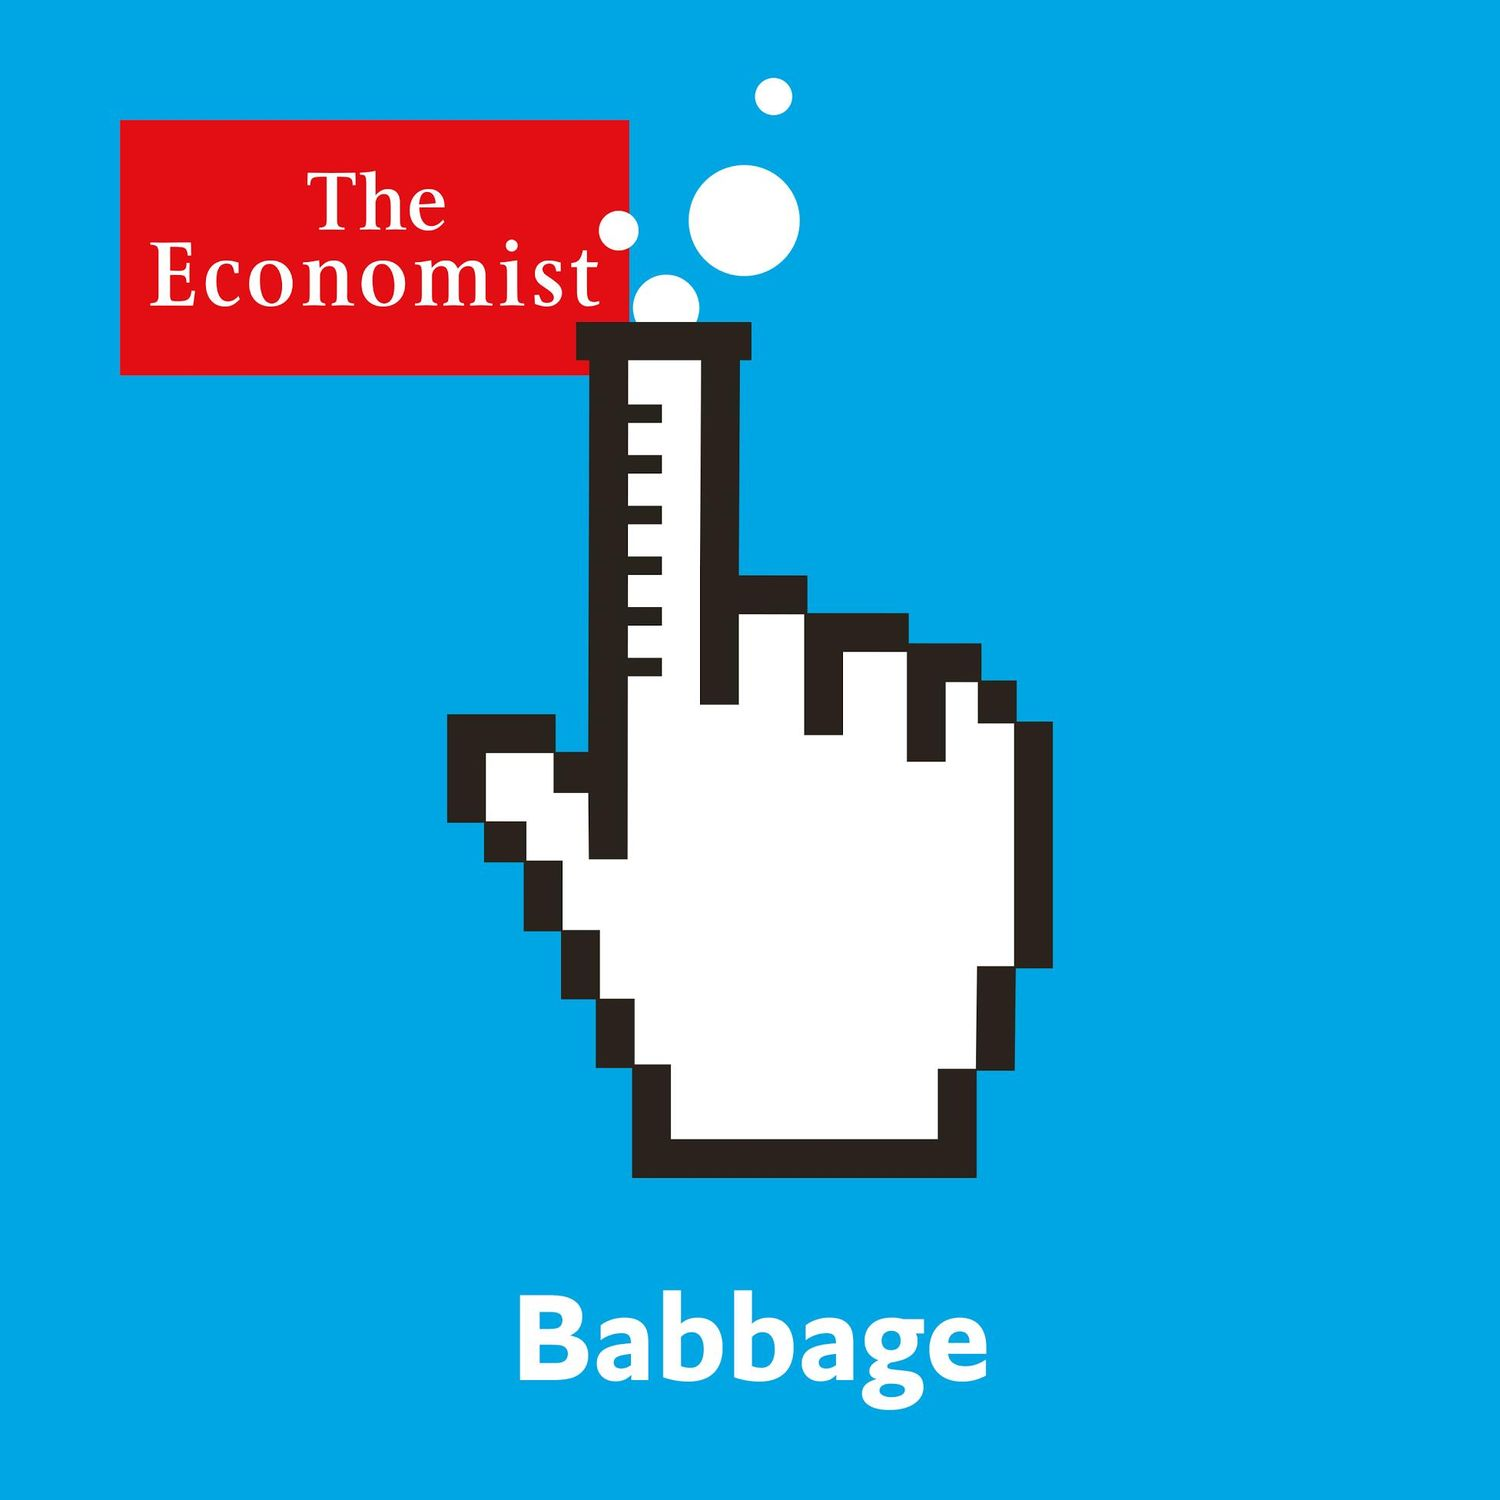 Babbage: The blame game